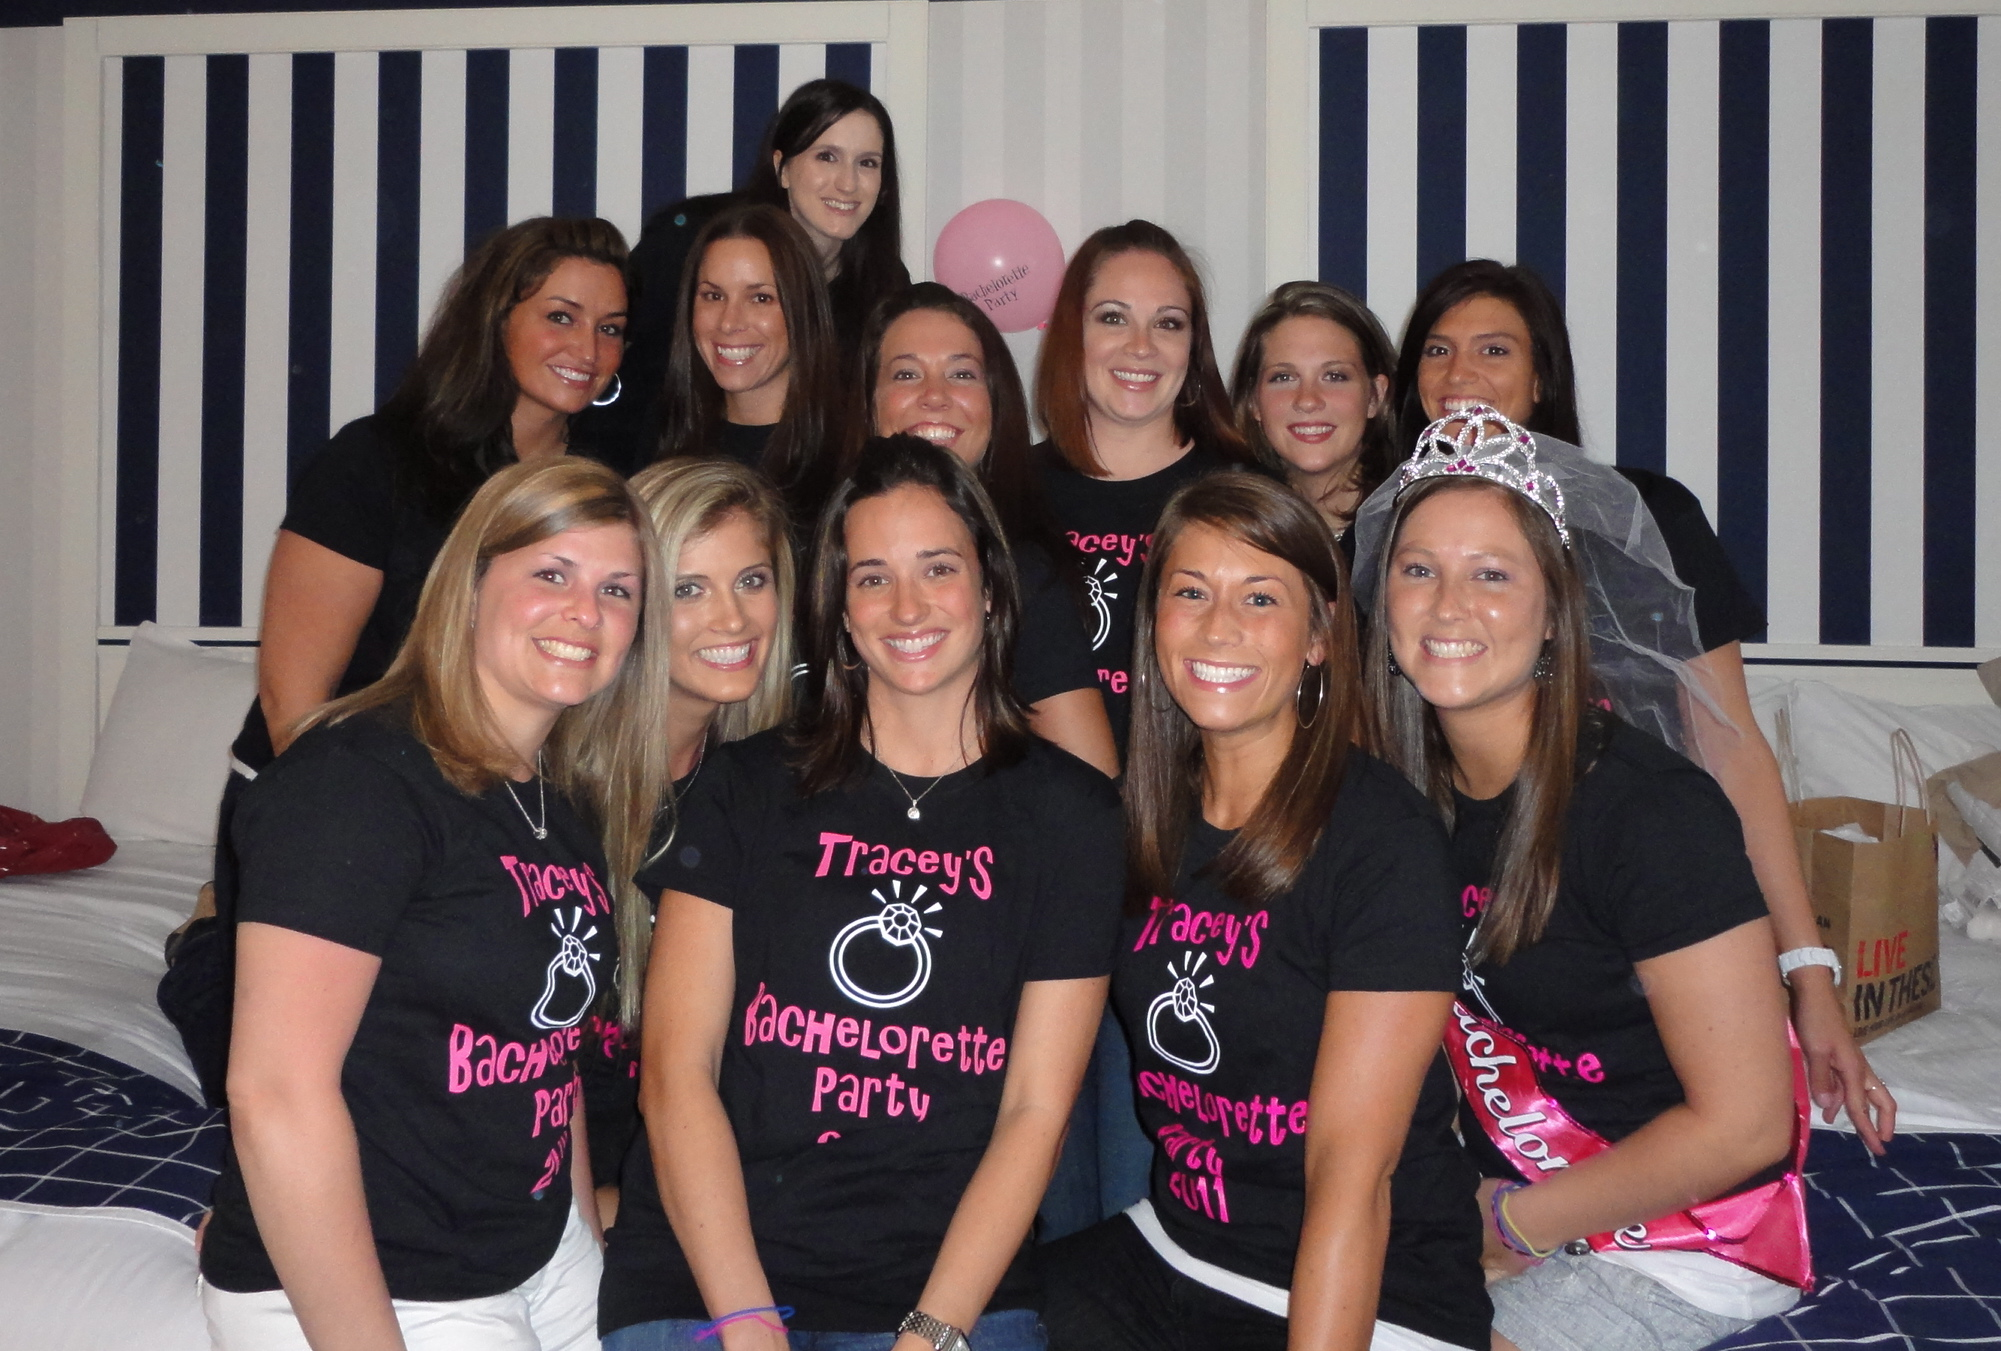 Custom t shirts for tracey 39 s bachelorette party shirt for Www custom t shirts